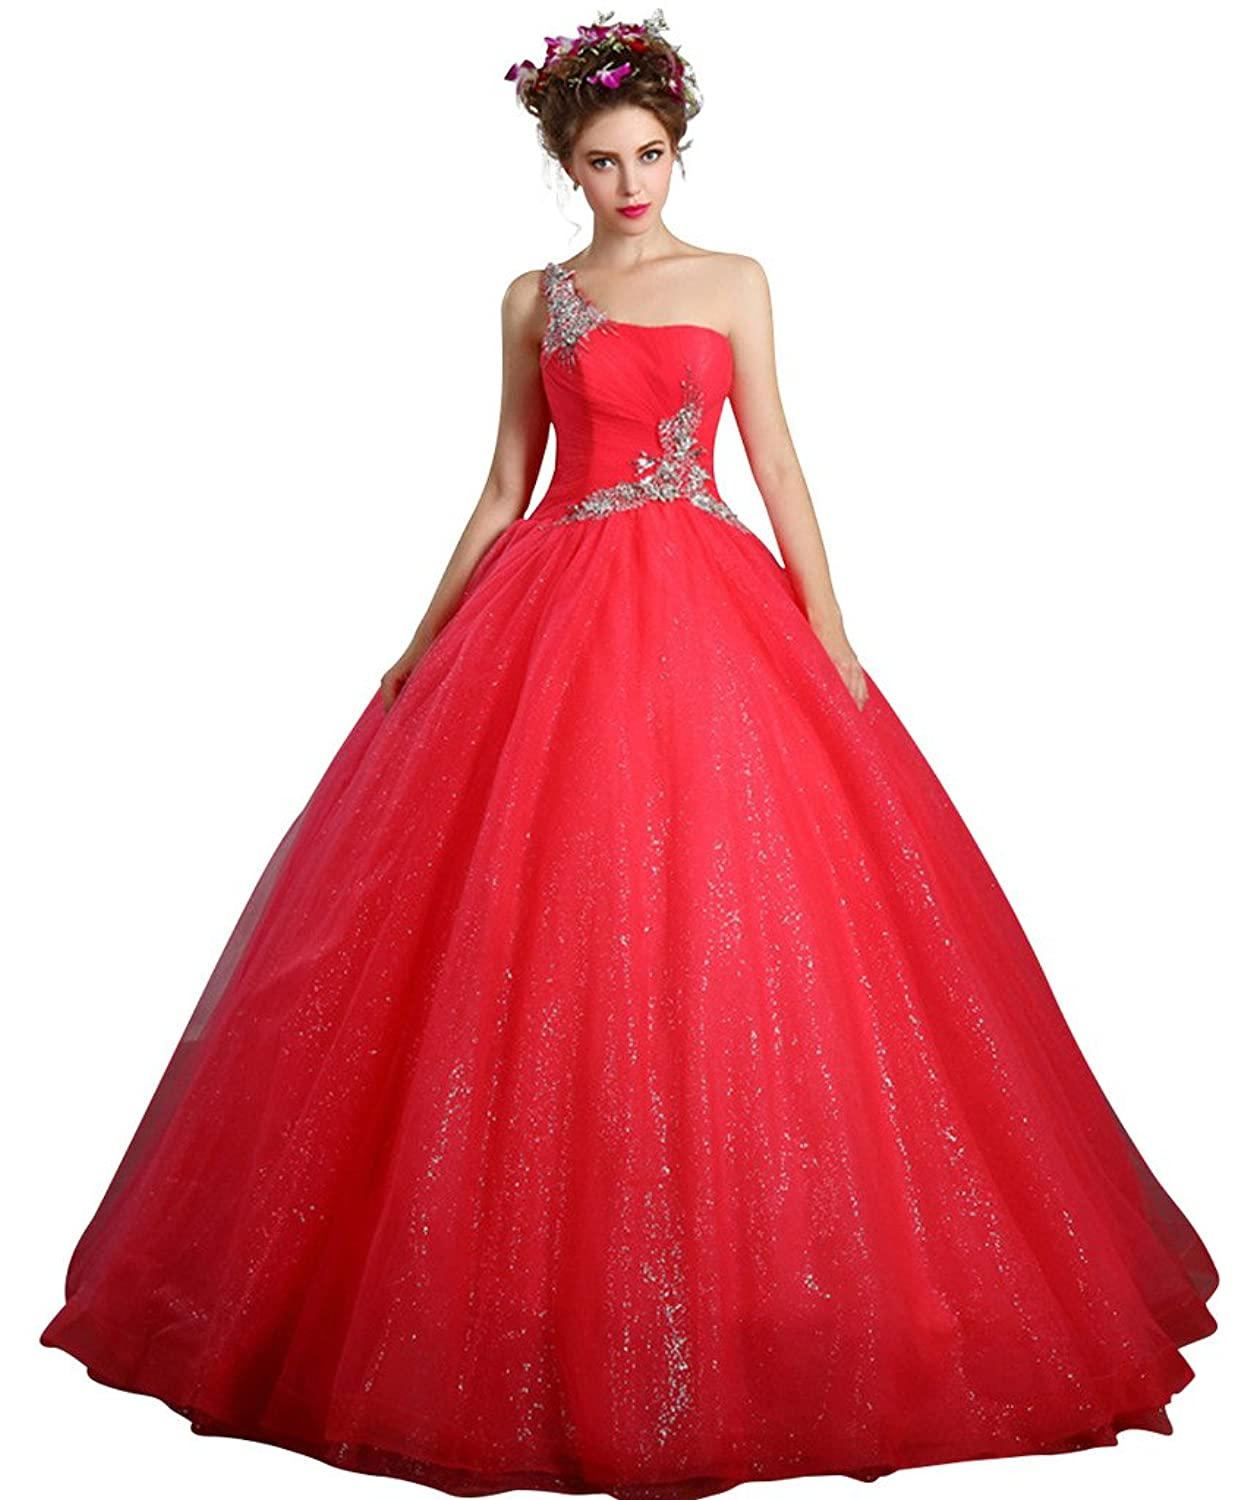 Vimans? Long Fashion One Shoulder Beaded Puffy Bridal Evening Ball Gowns